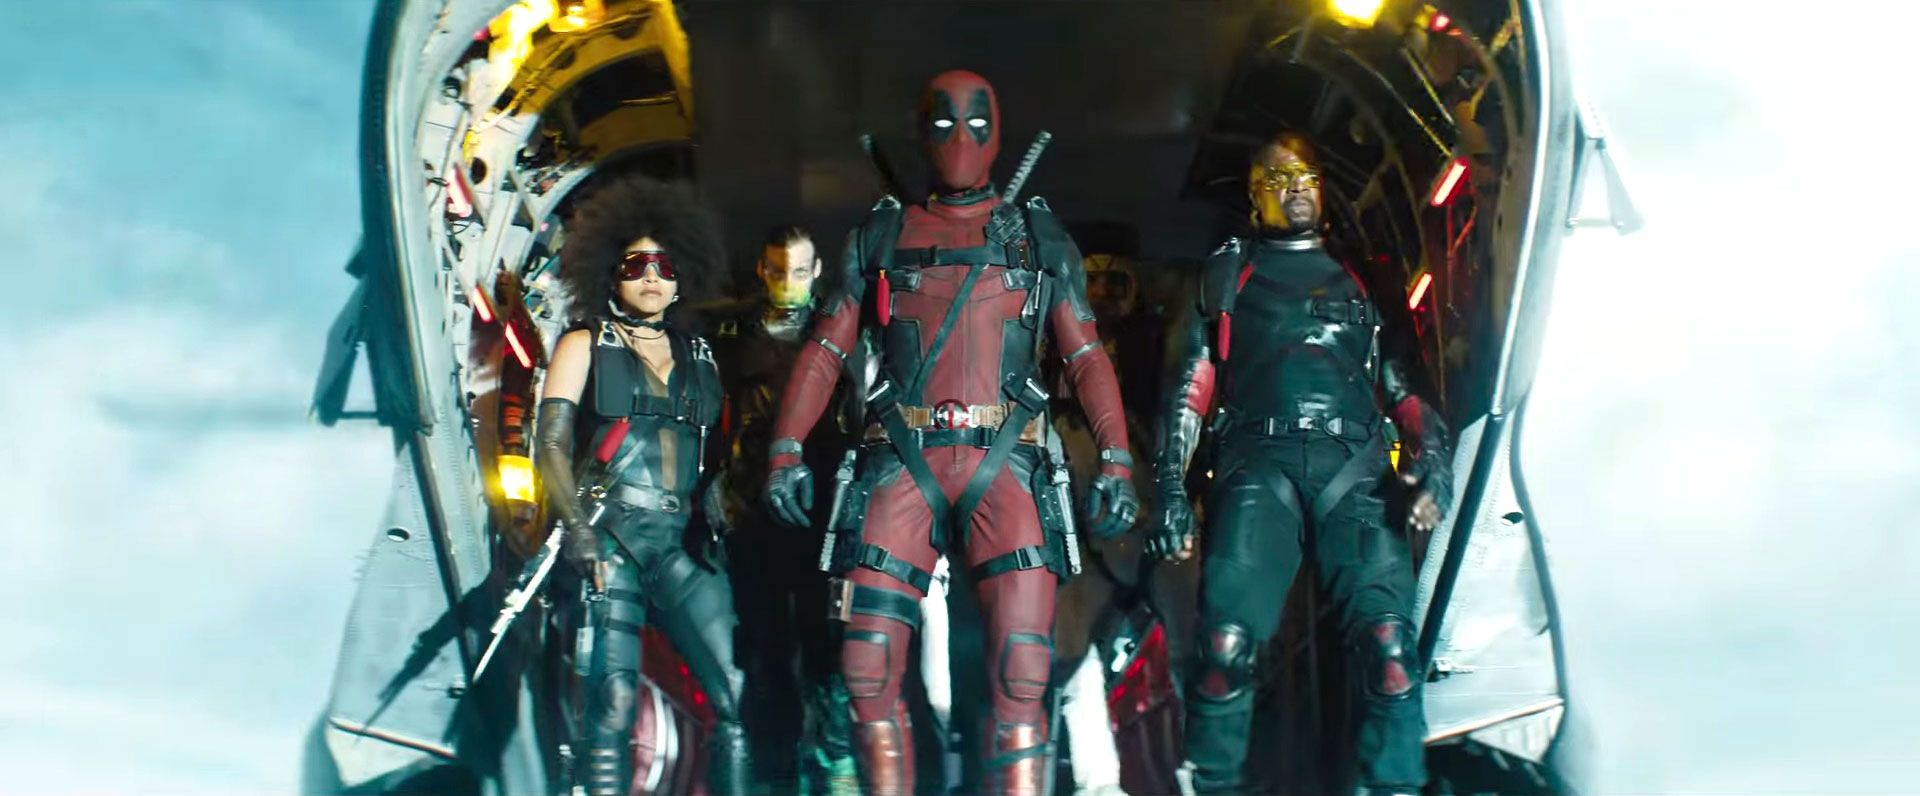 Deadpool 2 Release Date Cast Plot And Everything You Need To Know X-force Movie Release Date, Cast, Plot And Everything You